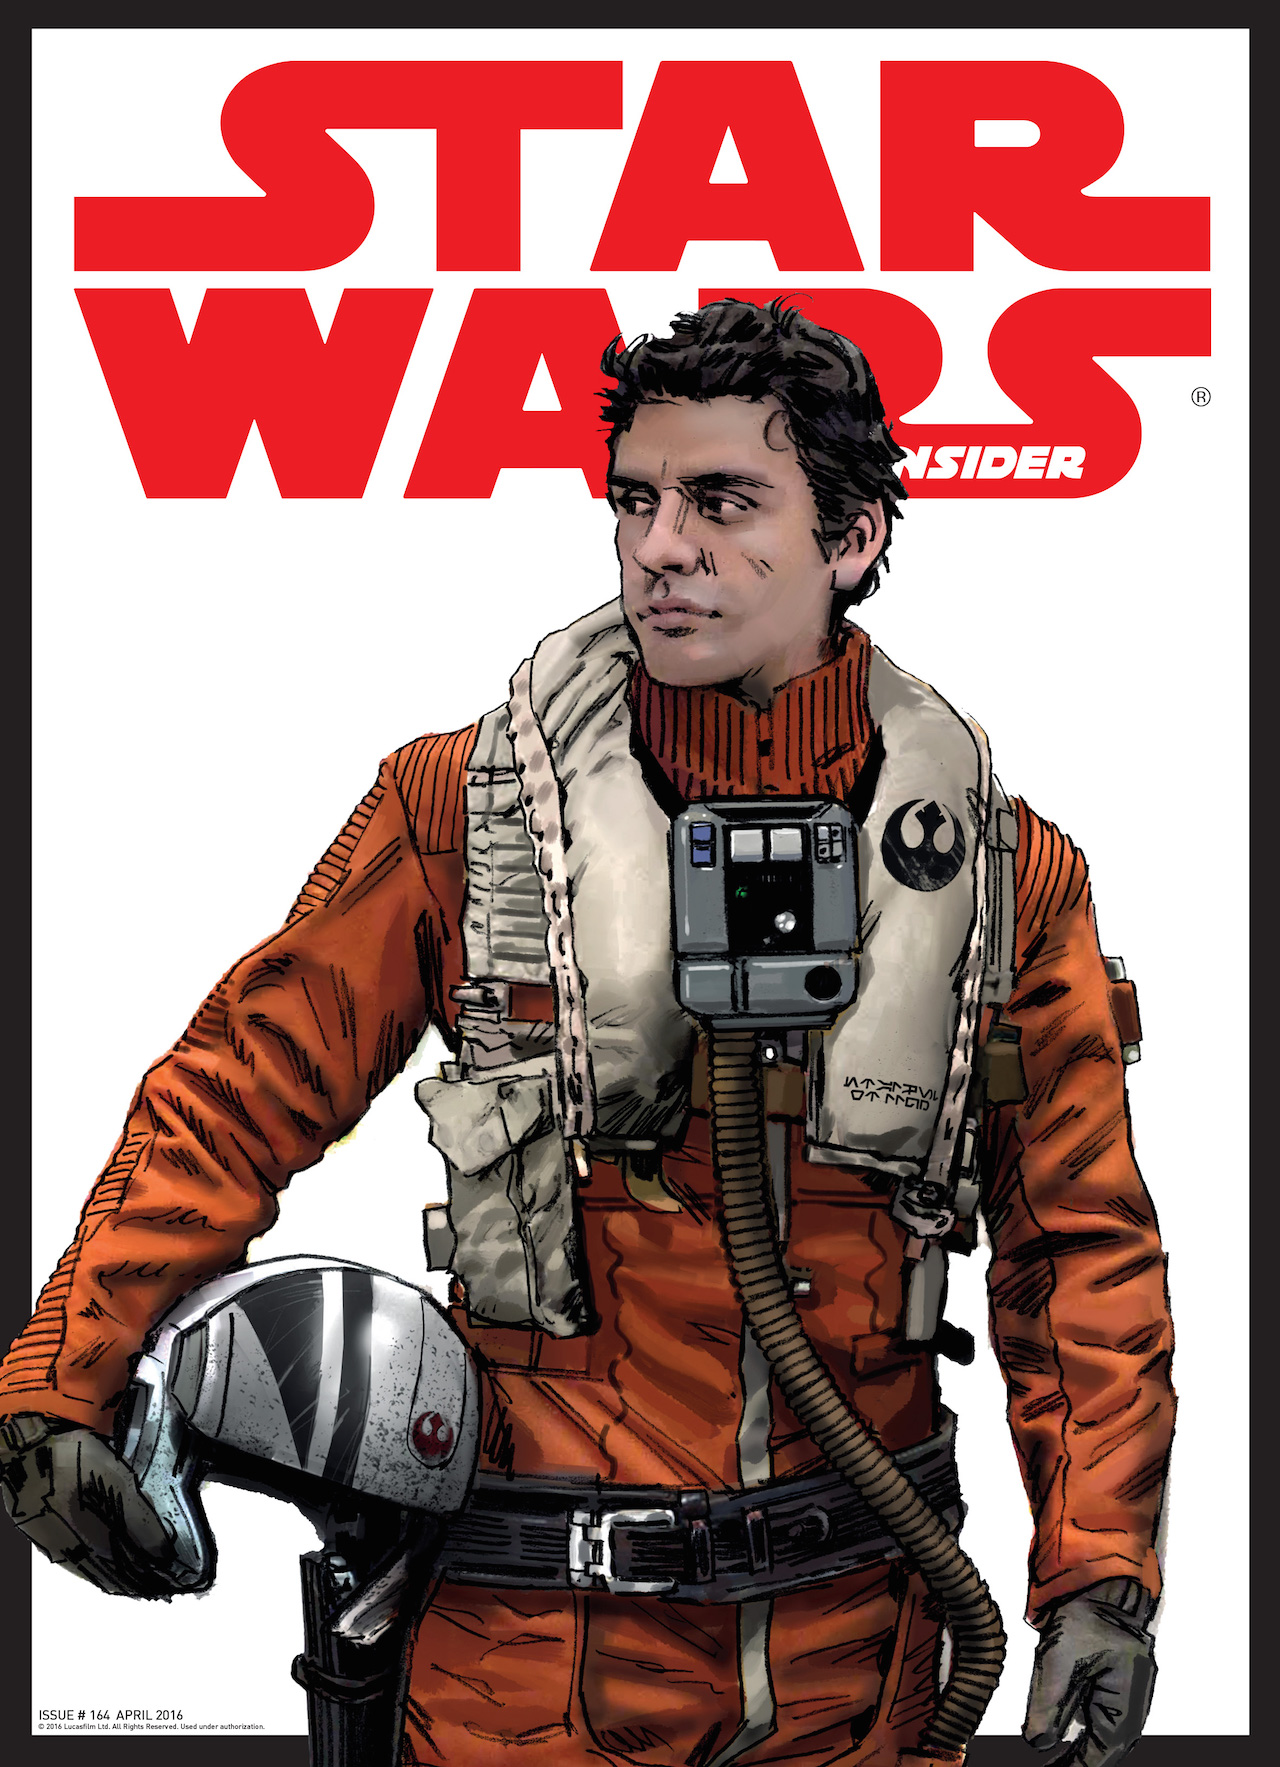 Star Wars Insider #164 - Poe Dameron